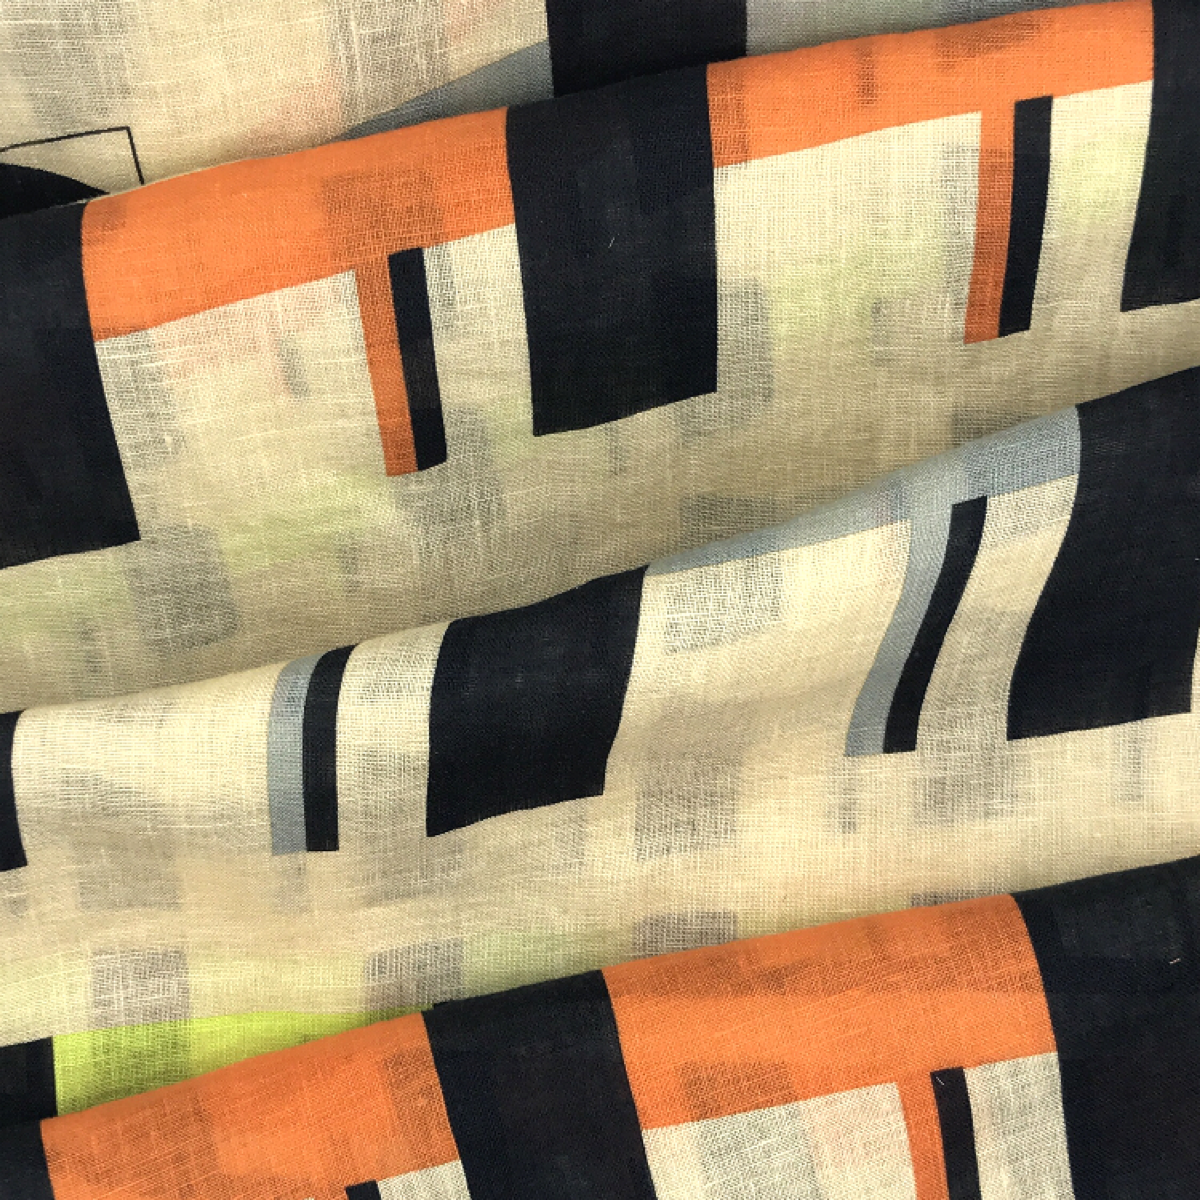 Abstratc Neutral, Orange, Yellow and Grey Printed Woven Textile by Beach & Body by Clerici Tessuto